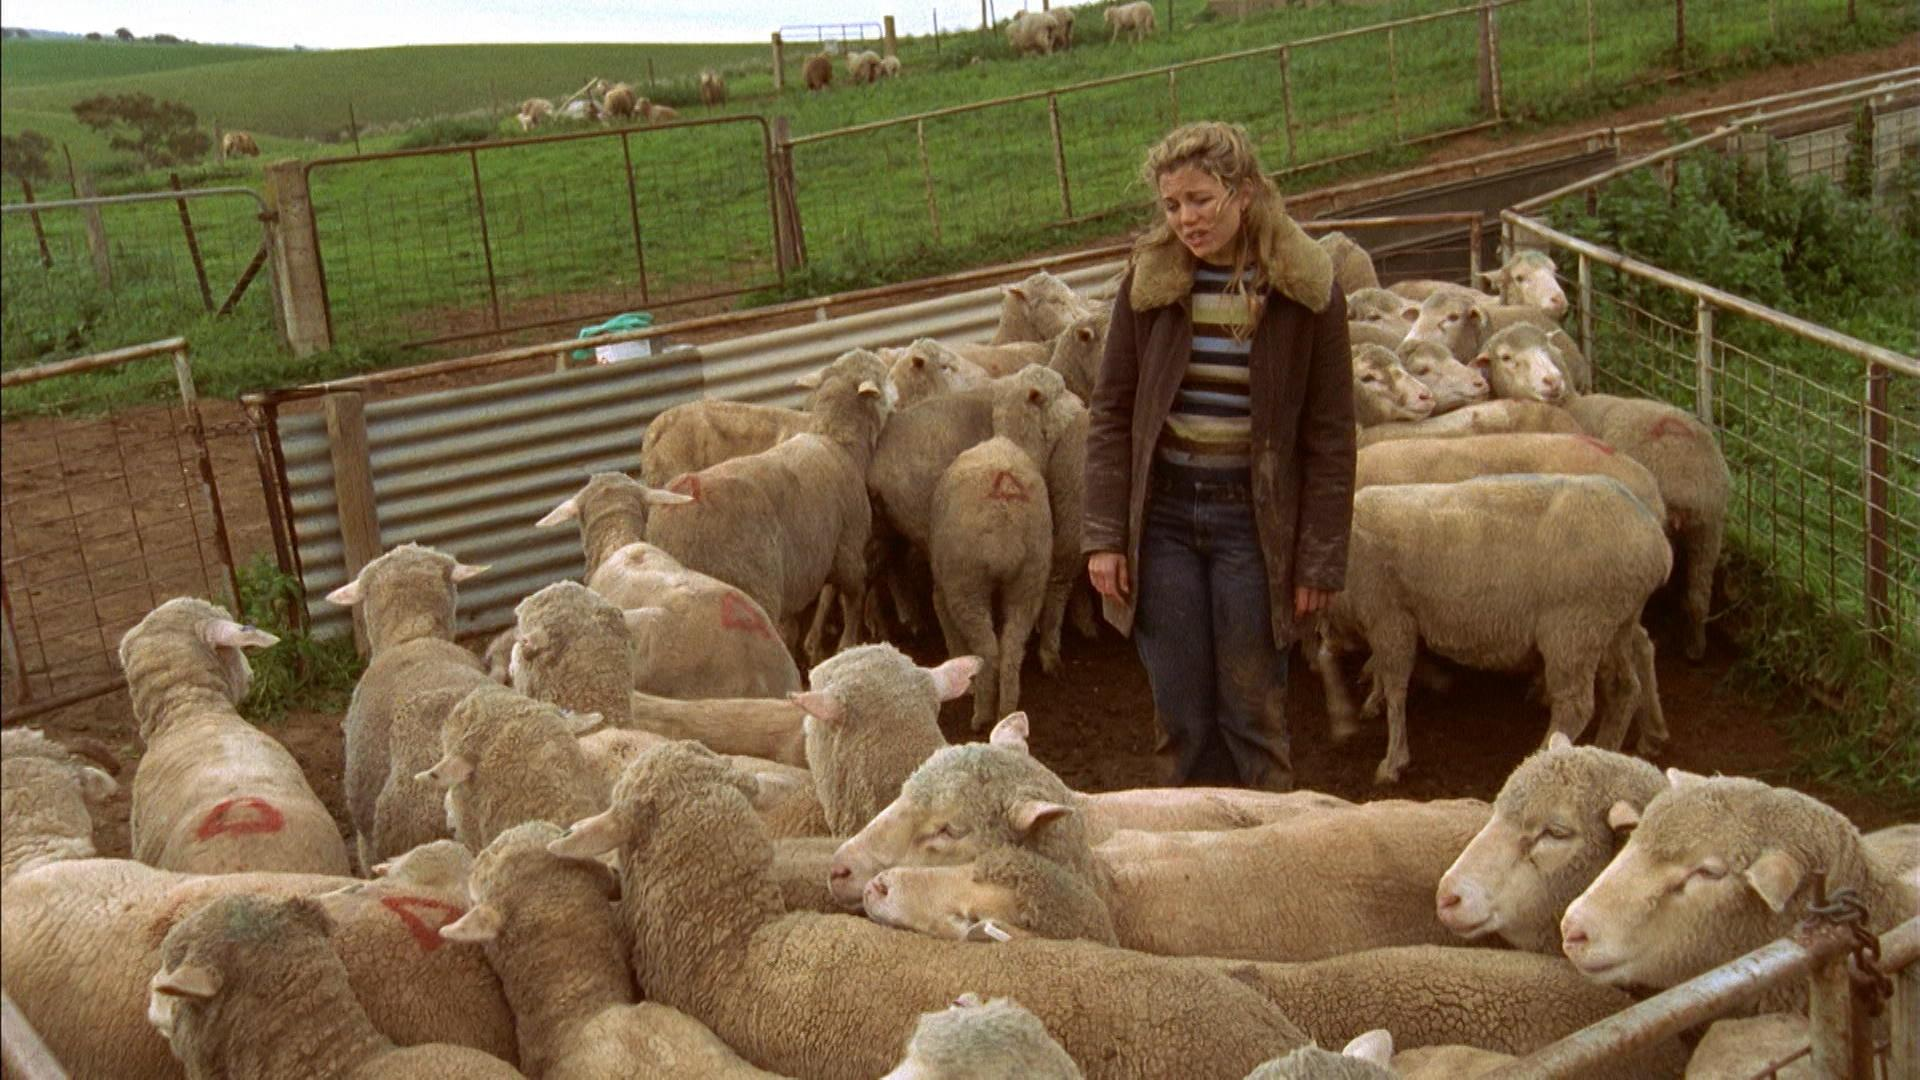 A woman standing in a pen, surrounded by sheep, looking defeated.